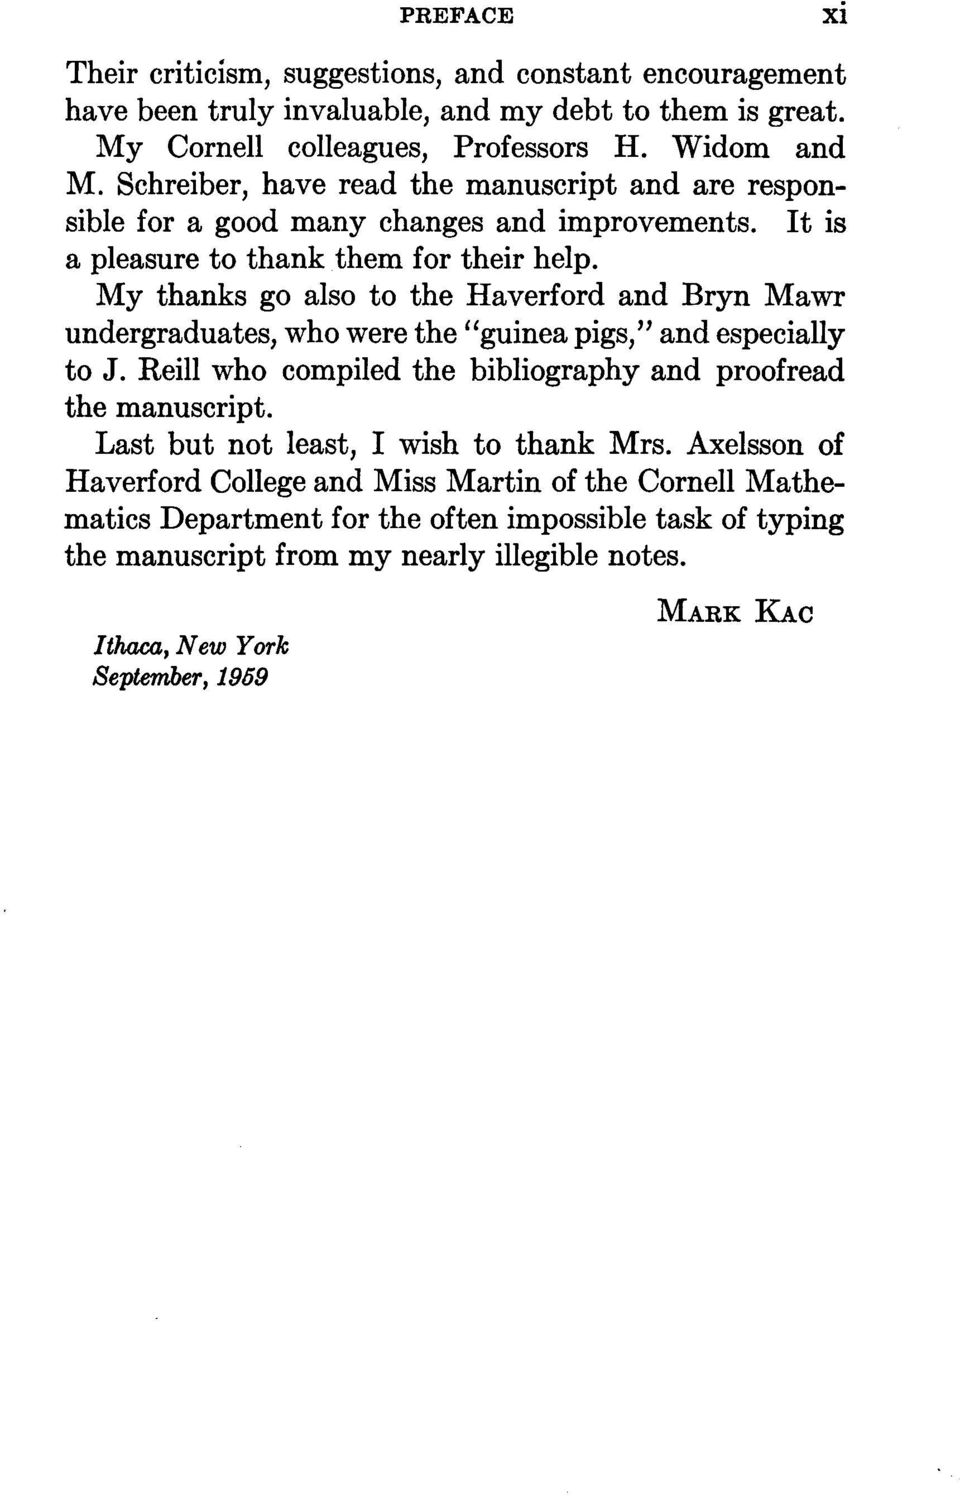 "My thanks go also to the Haverford and Bryn Mawr undergraduates, who were the ""guinea pigs,"" and especially to J. Reill who compiled the bibliography and proofread the manuscript."